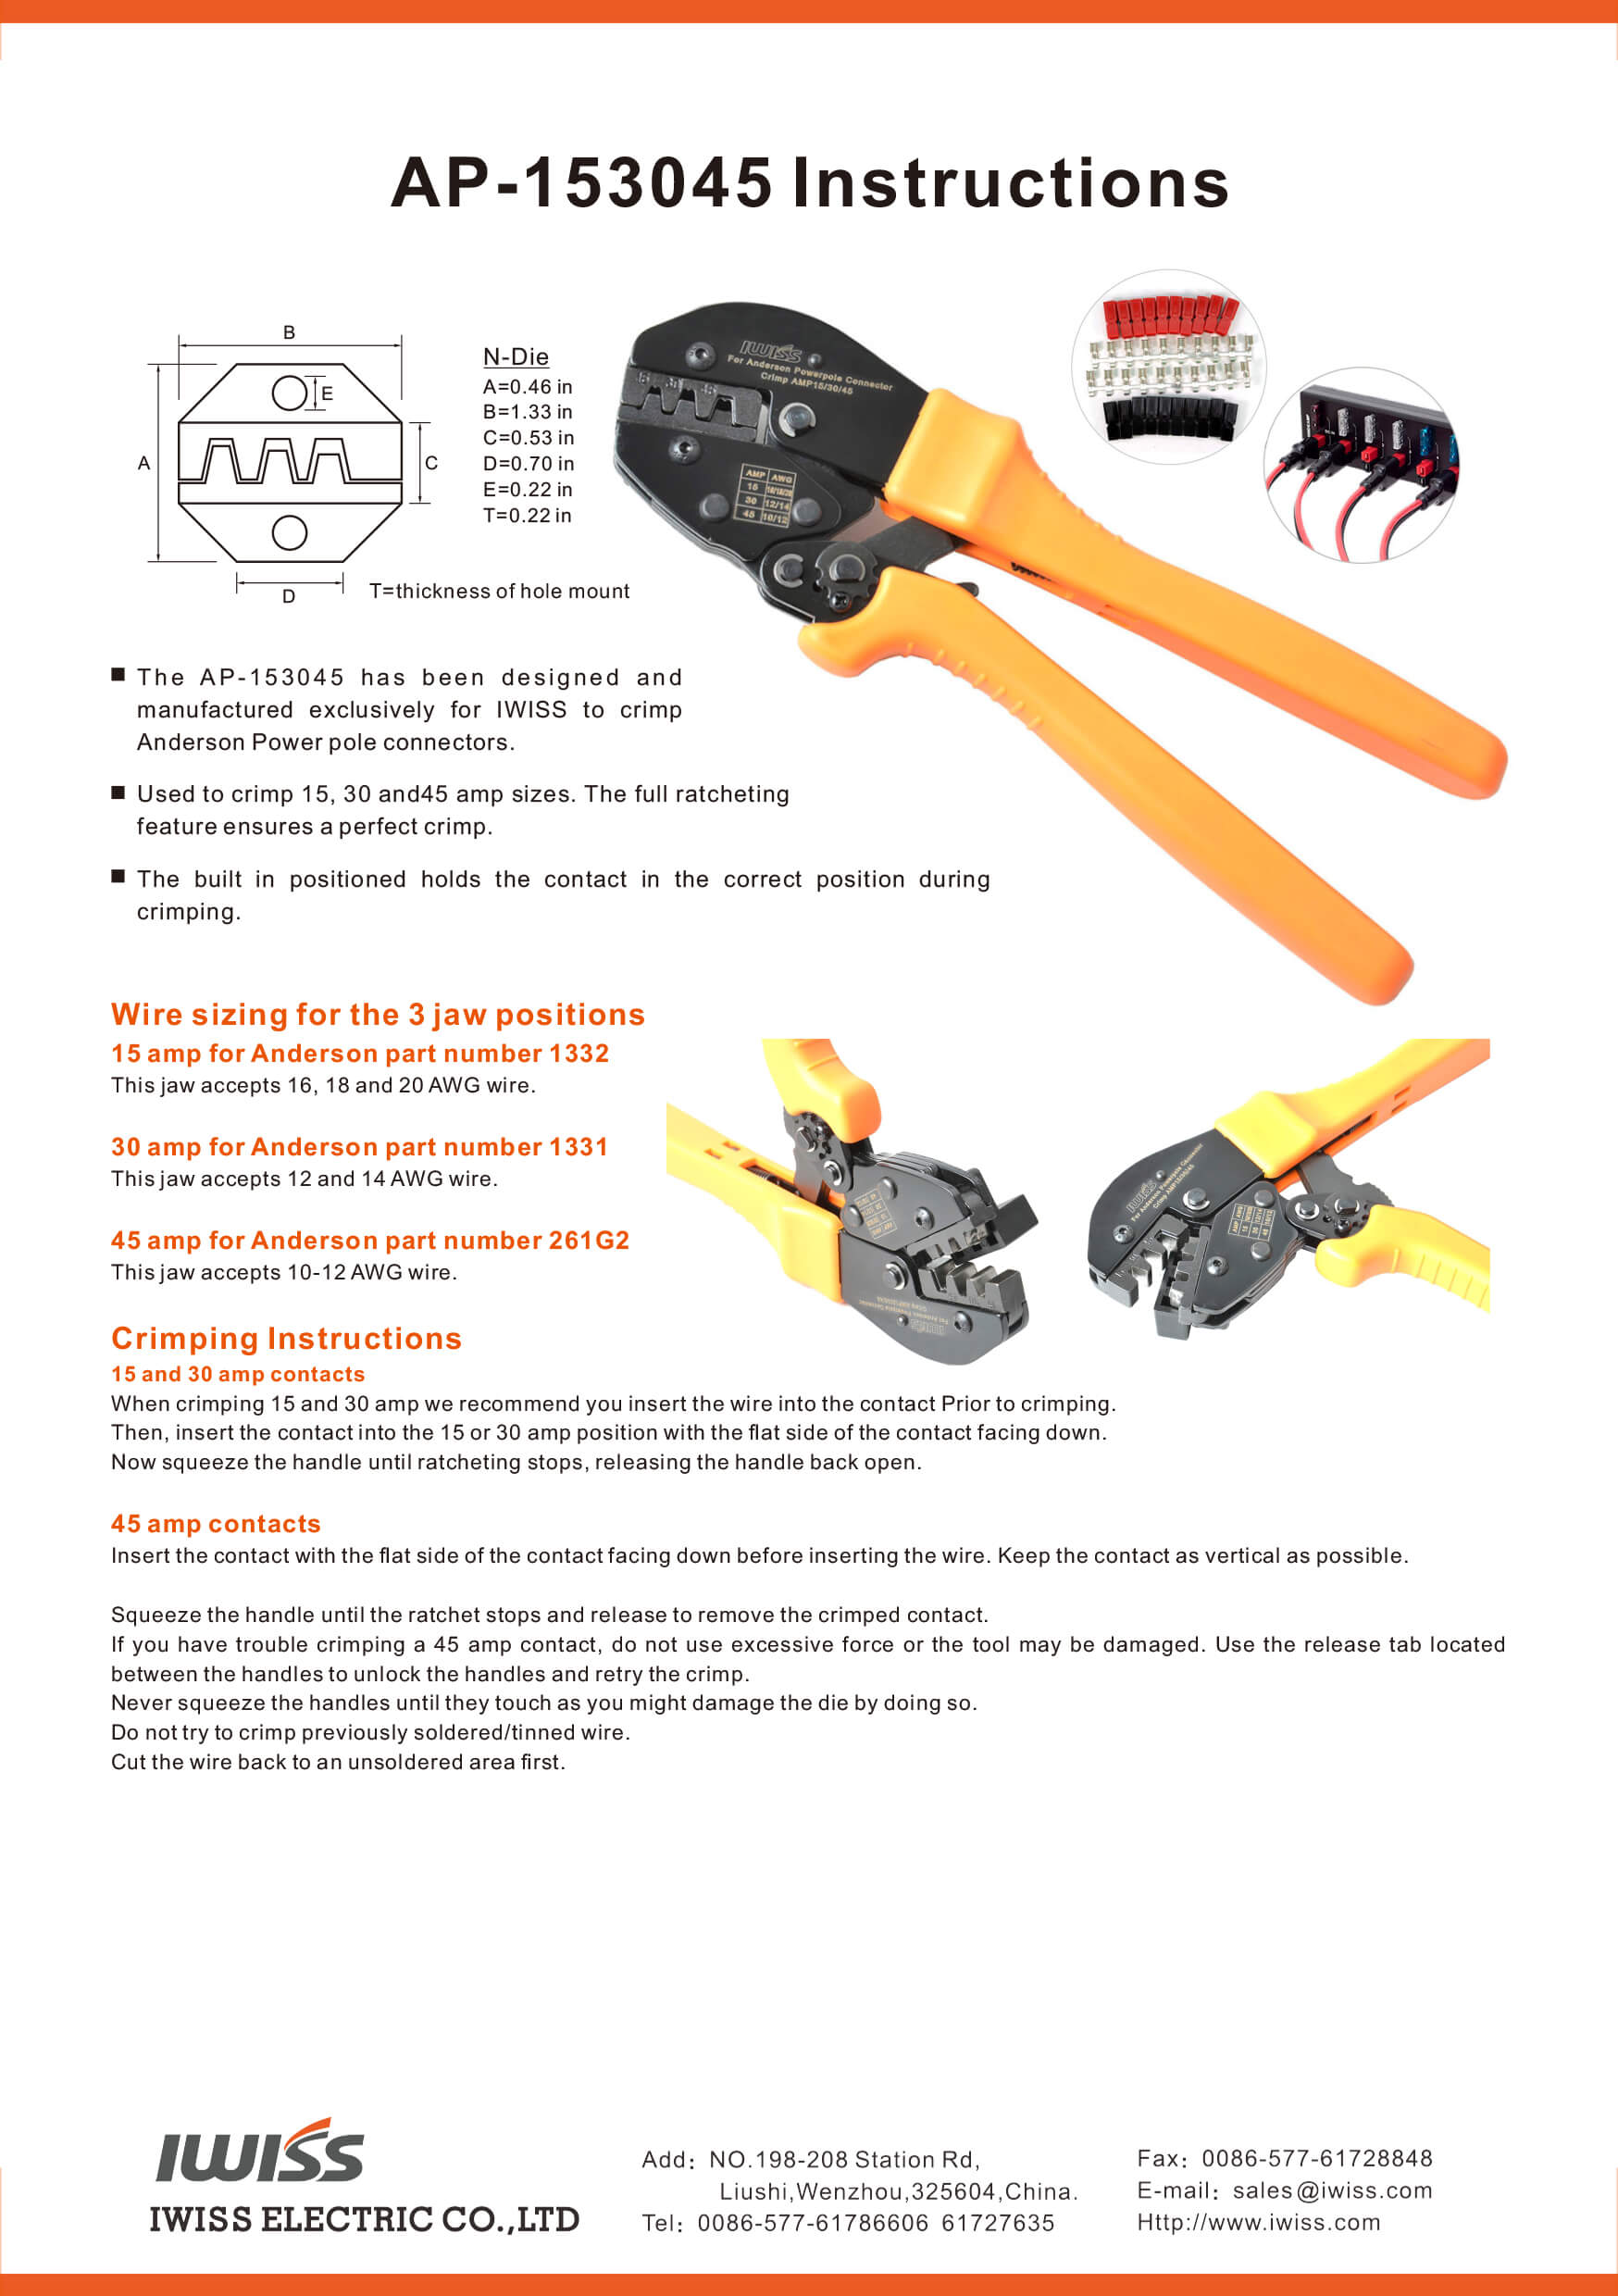 AP-153045 RATCHETING WIRE CRIMPING TOOL